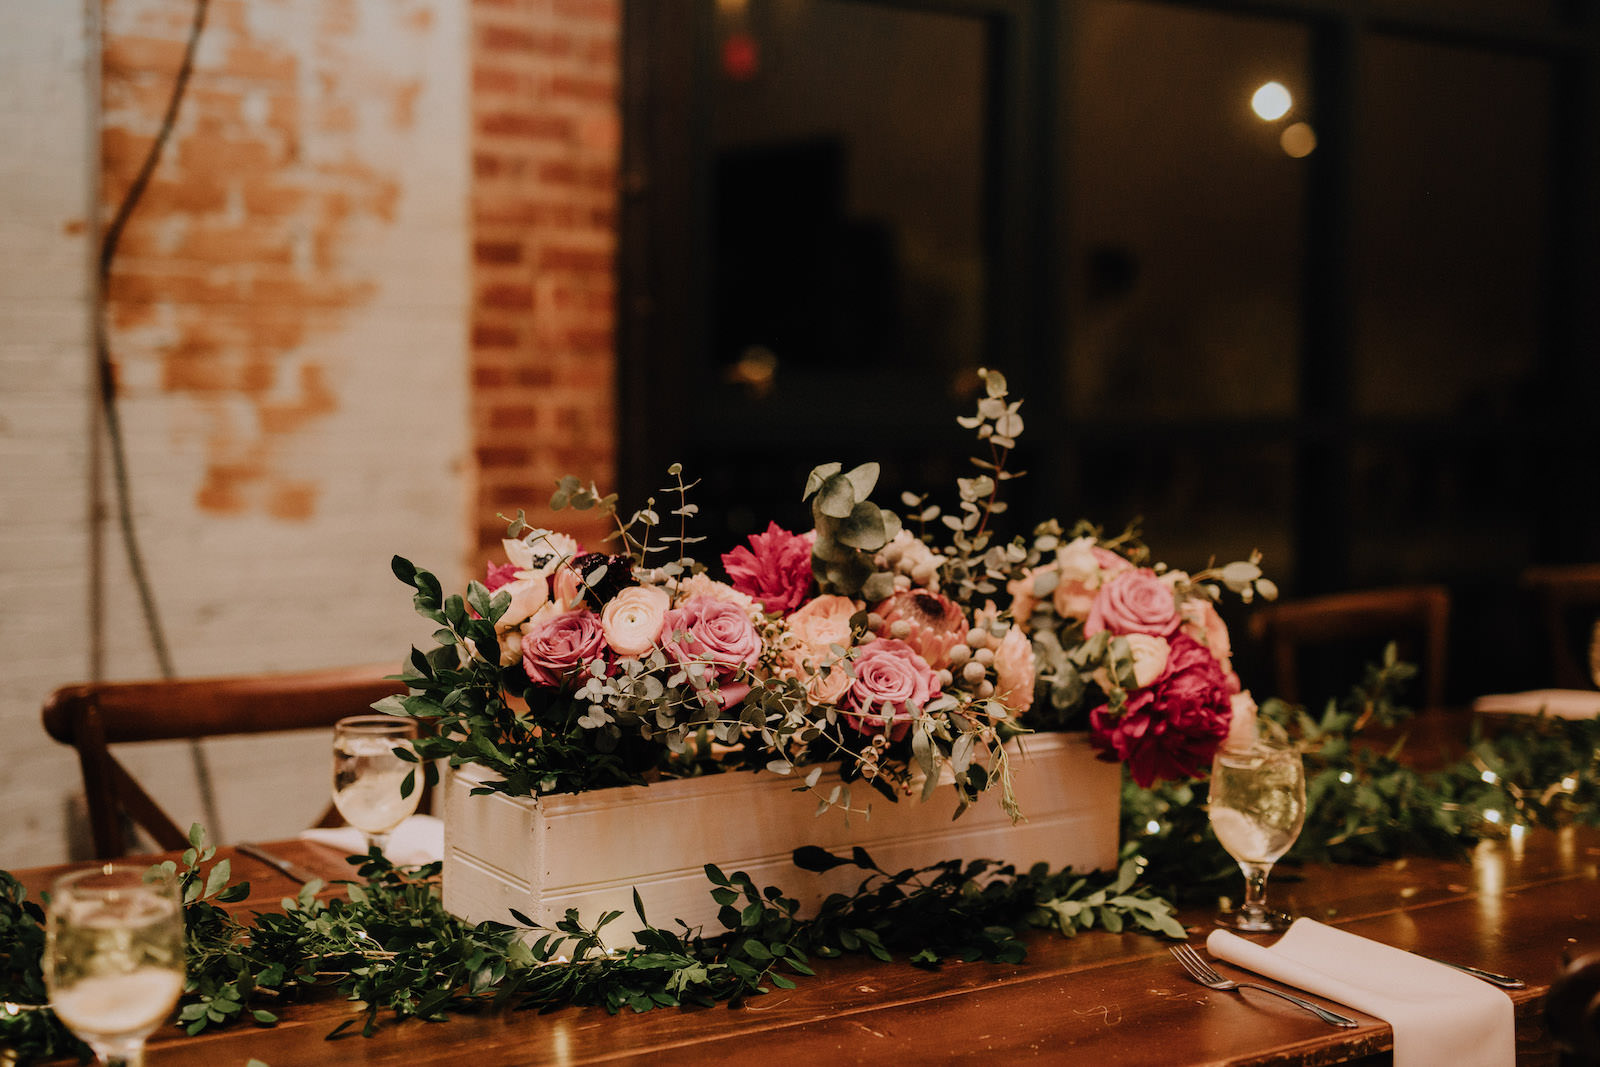 Rustic Boho Wedding Reception with Boxed Red and Pink Floral Centerpieces and Greenery Garland | St. Pete Wedding Florist Posies Flower Truck